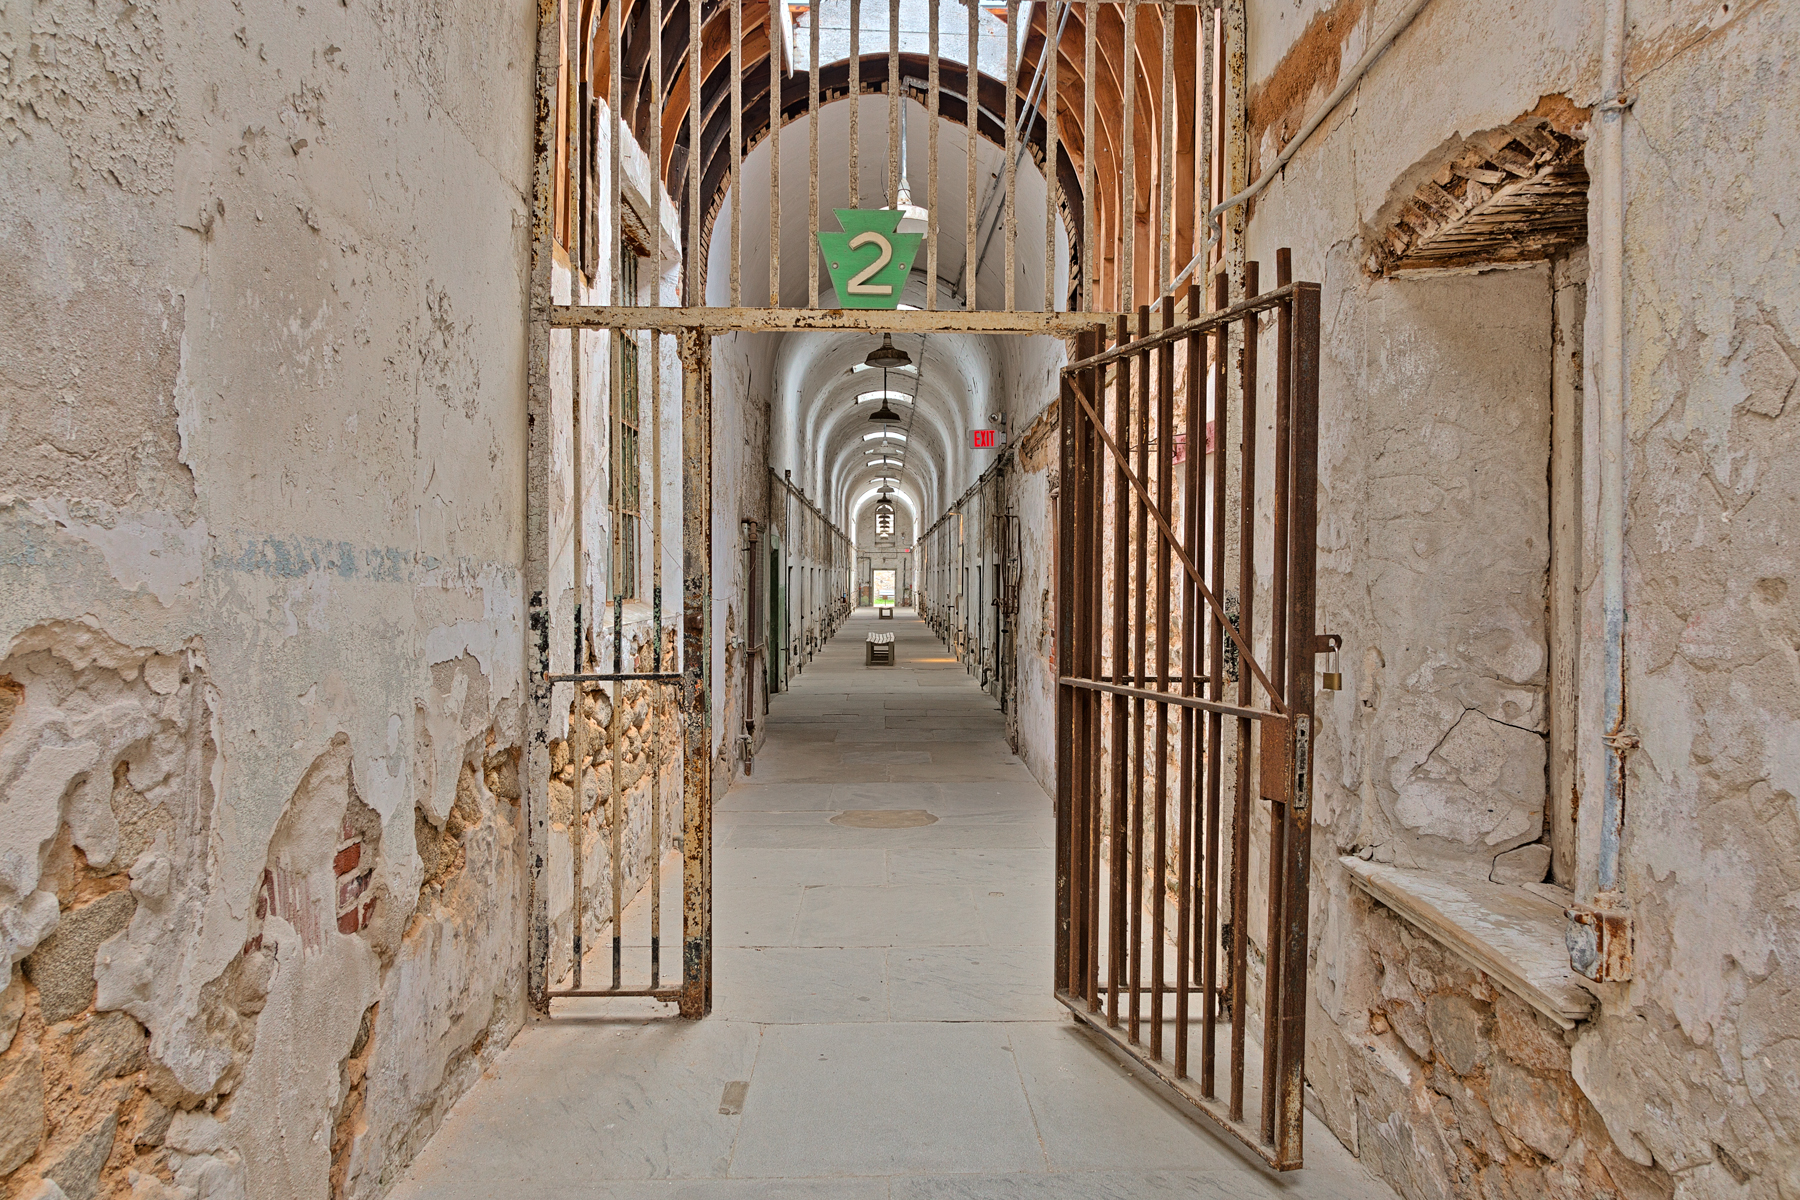 Gated prison corridor - hdr photo